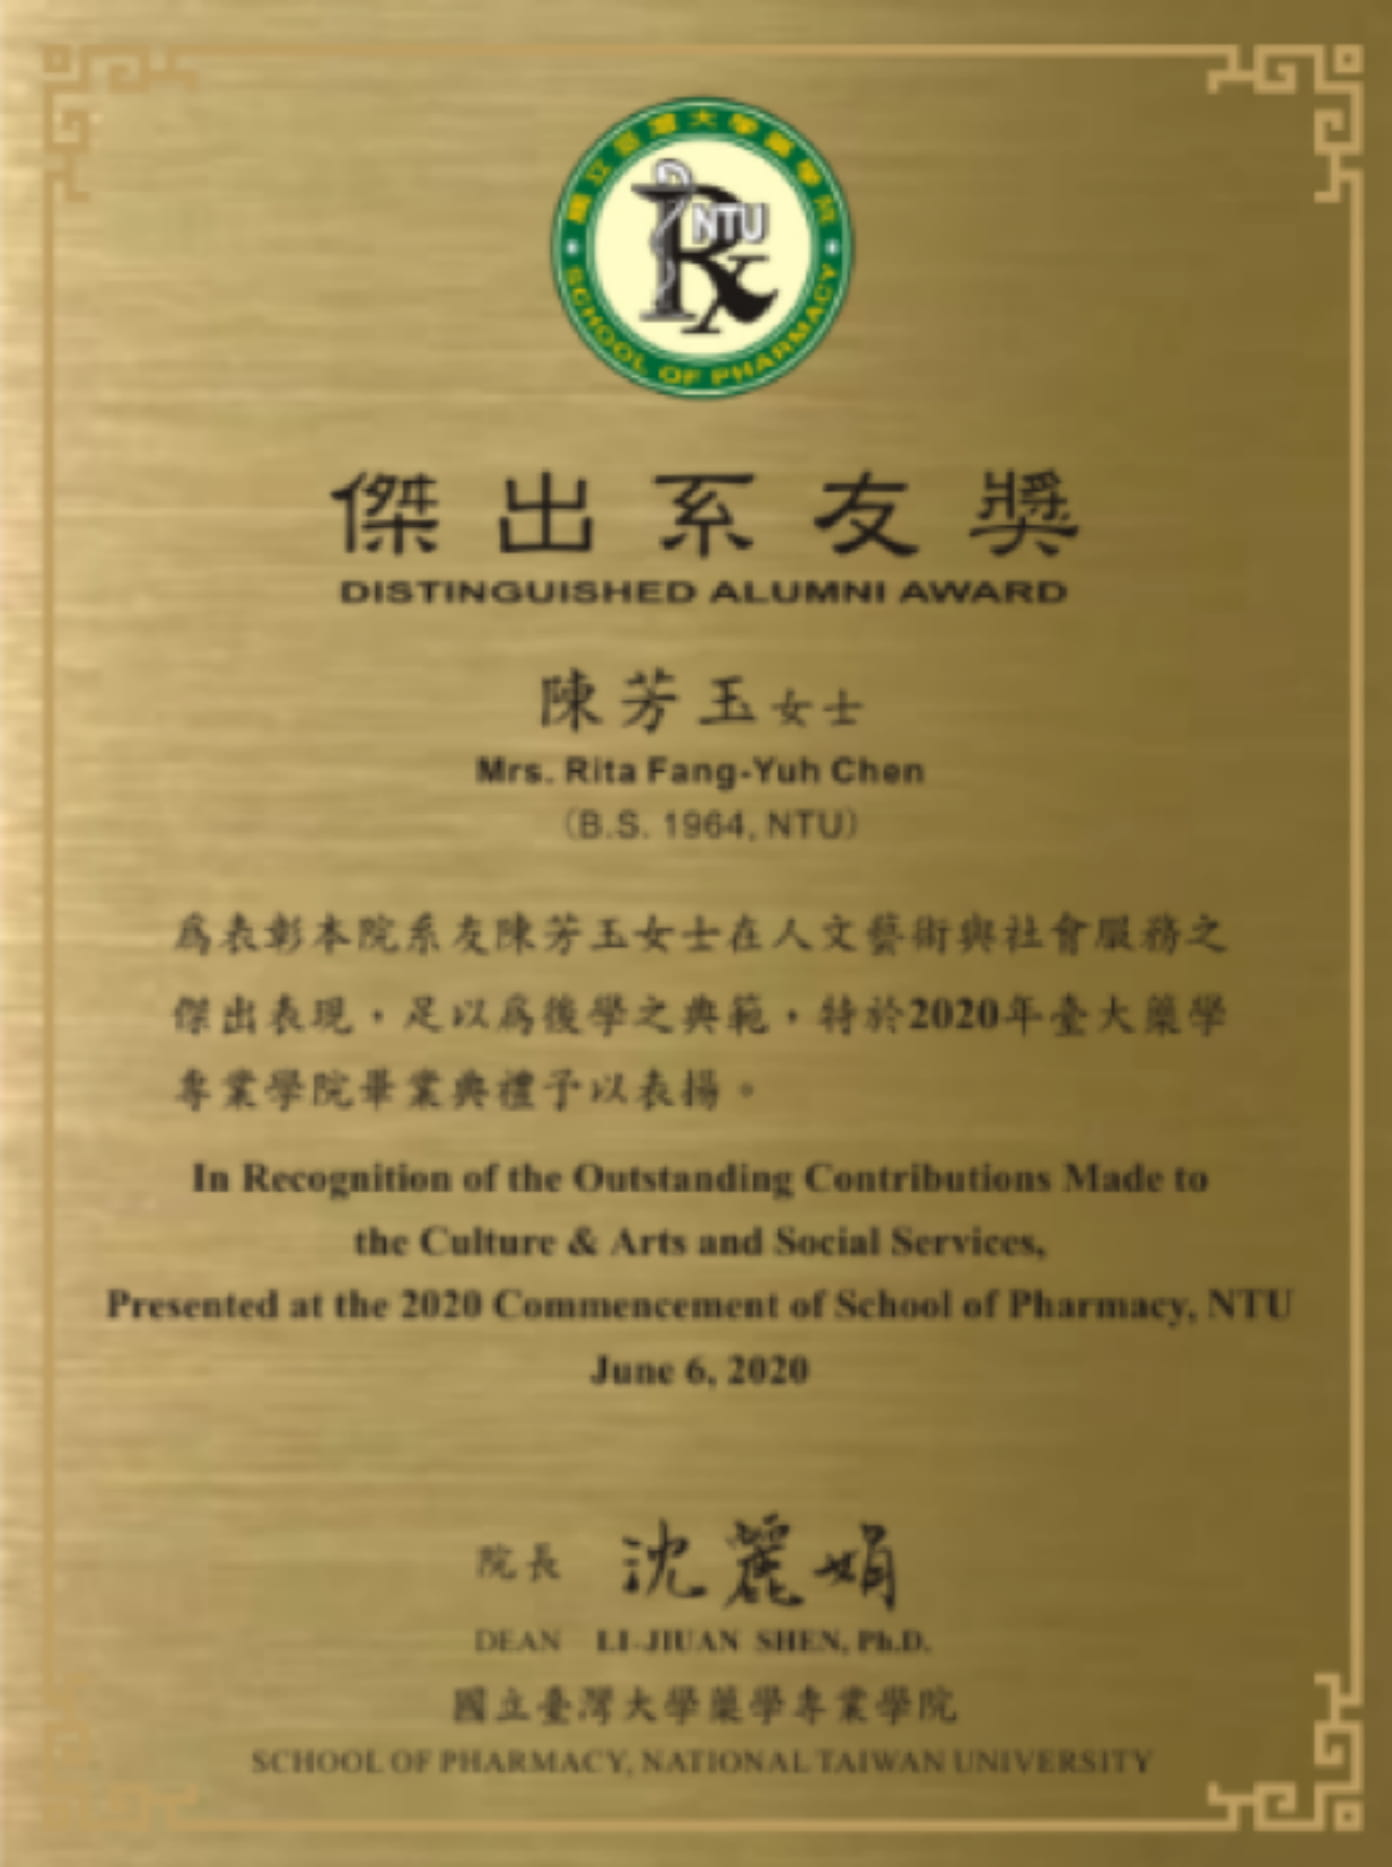 73. Rita Fang-Yuh Chen Received Outstanding Alumni  Award 2020 by the  School of Pharmacy, National Taiwan Univ.